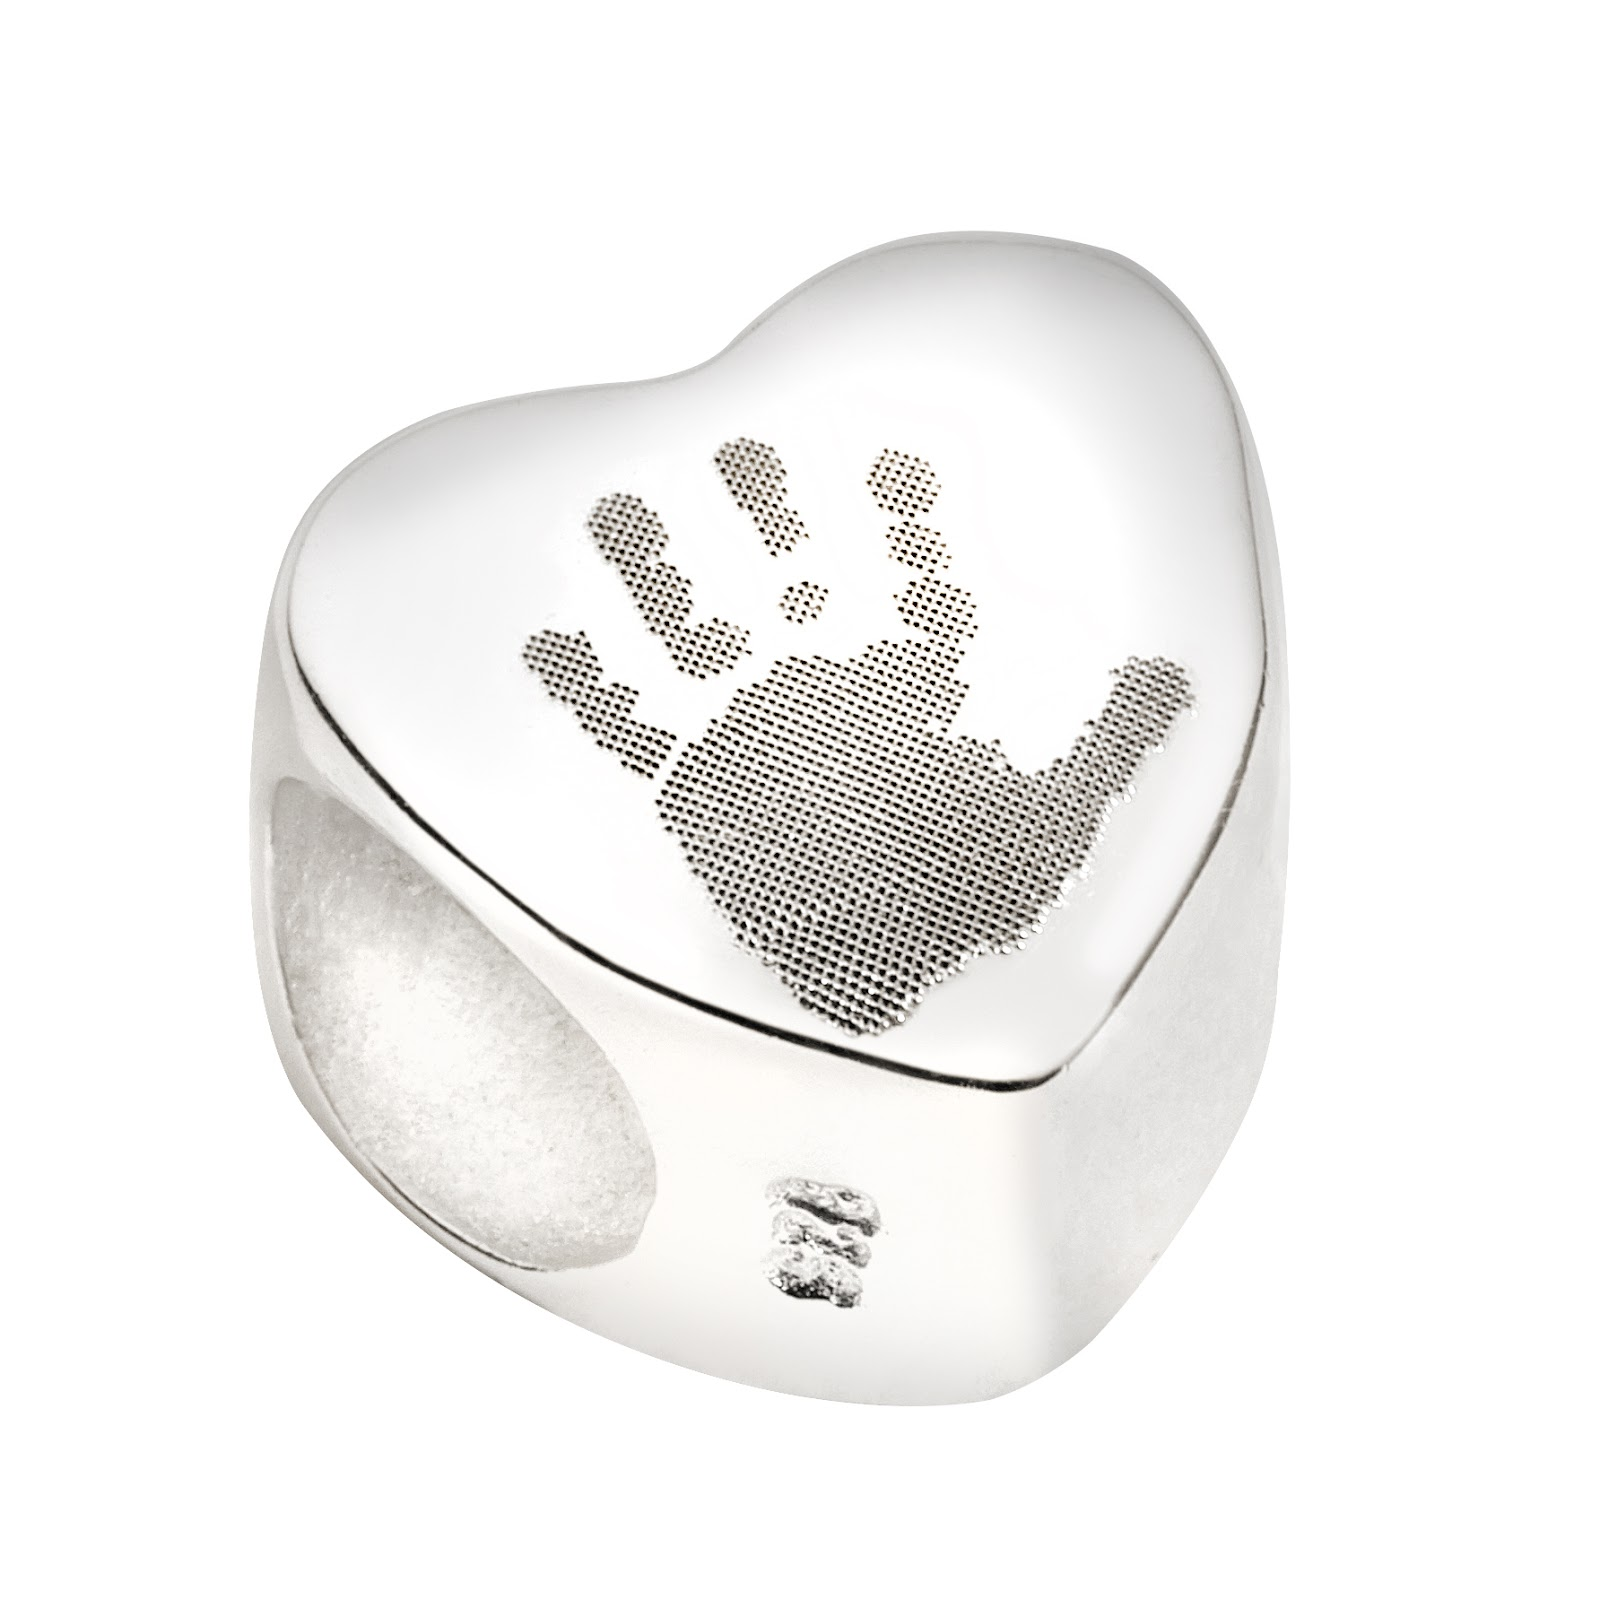 ENGRAVED HEART CHARM BEAD - ONE CHILD - HI RES.jpg